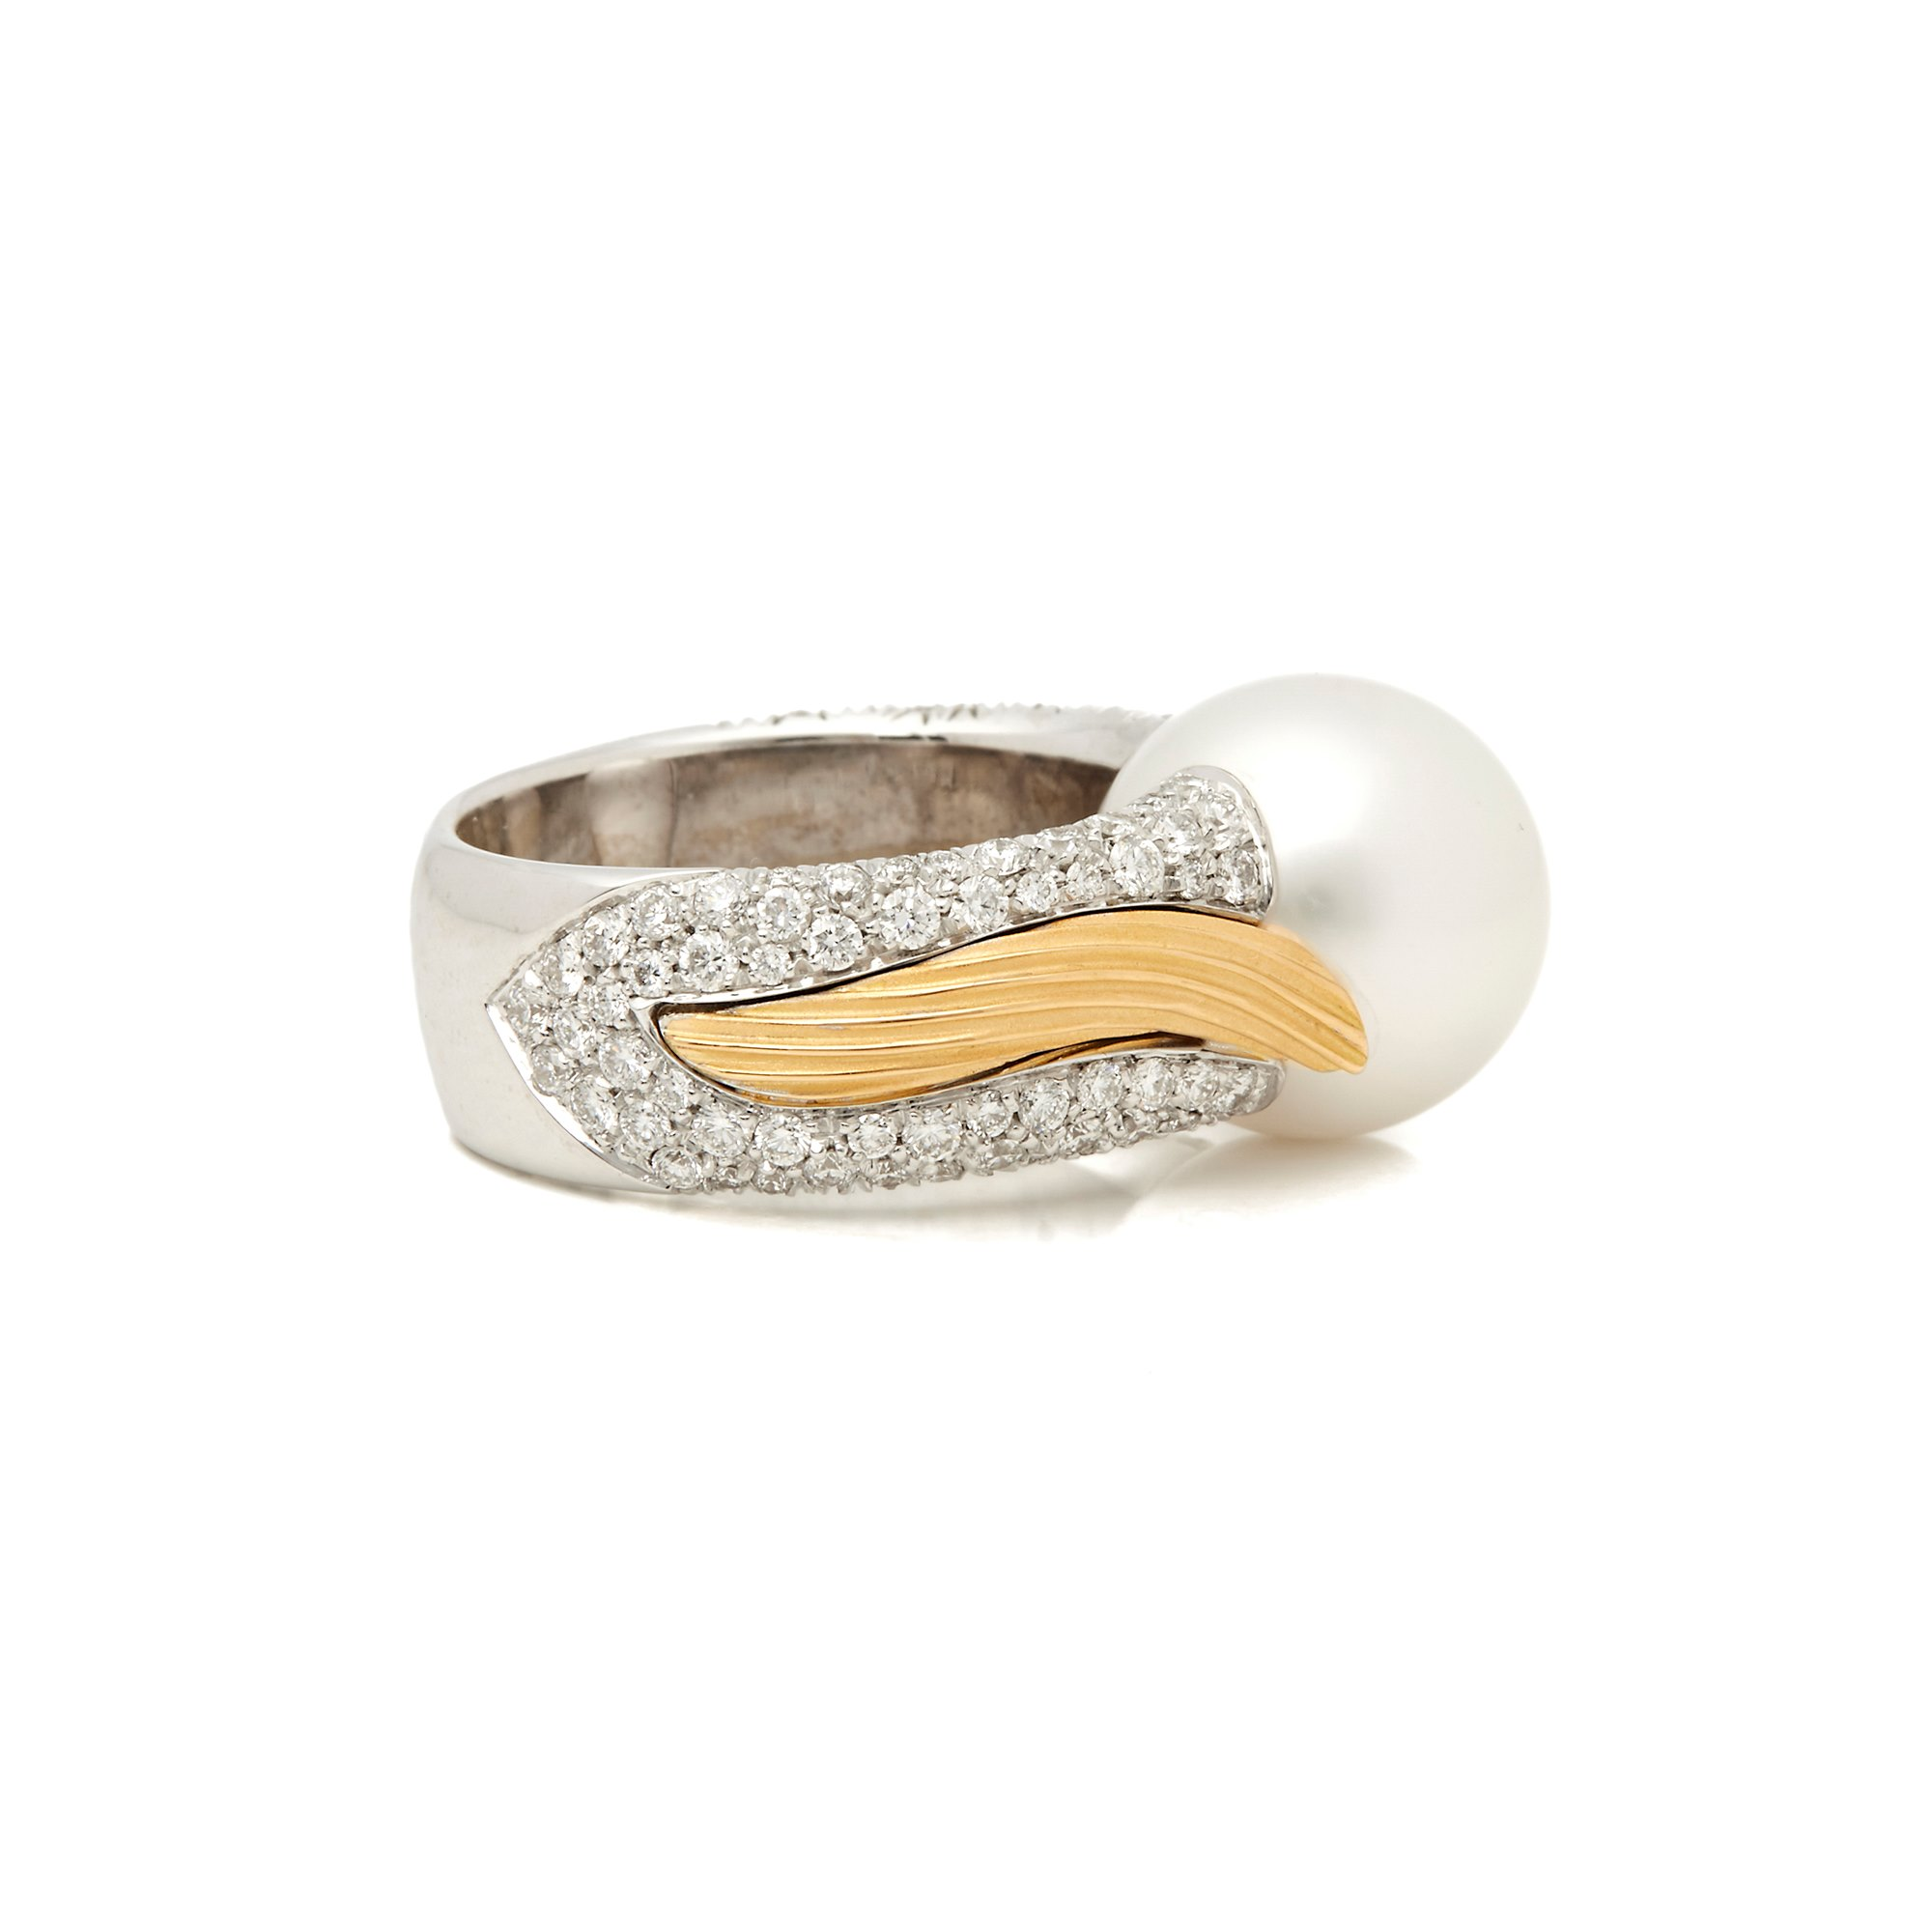 Mikimoto 18k White & Yellow Gold Akoya Pearl & Diamond Cocktail Ring